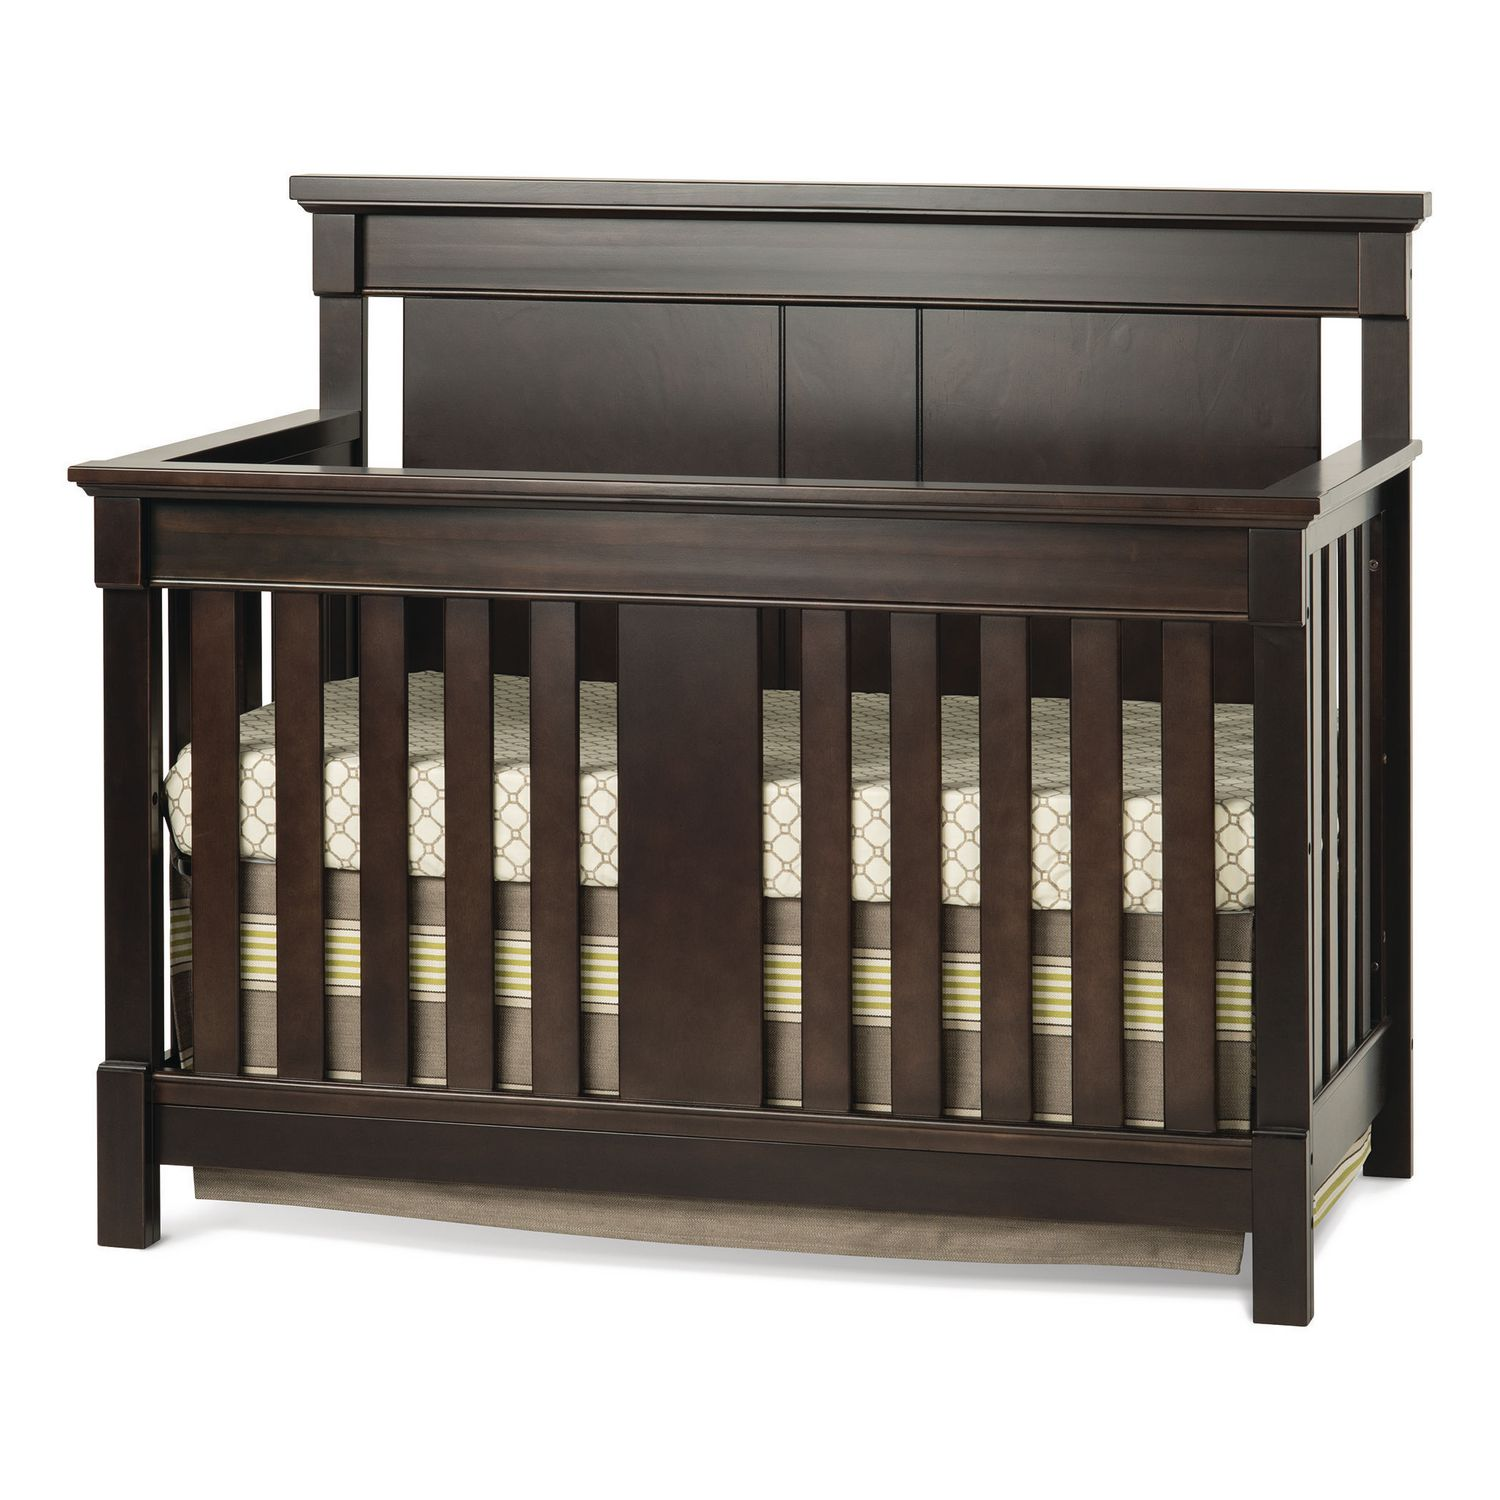 Used crib for sale toronto - Child Craft Bradford 4 In 1 Convertible Crib